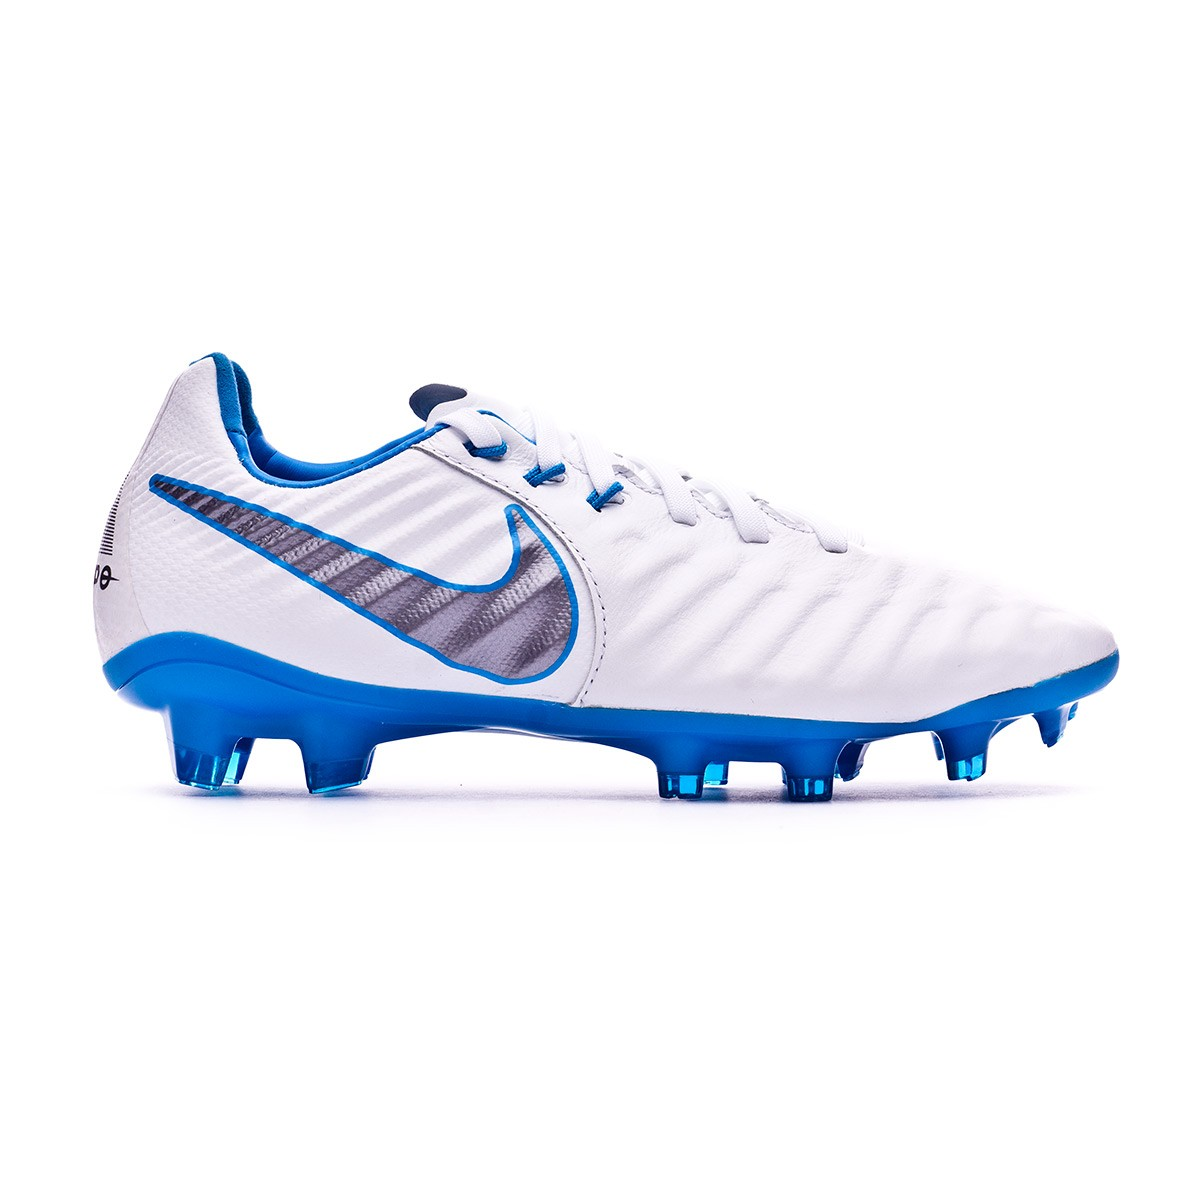 514ba2cd1e550 Football Boots Nike Kids Tiempo Legend VII Elite FG White-Metallic cool  grey-Blue hero - Football store Fútbol Emotion